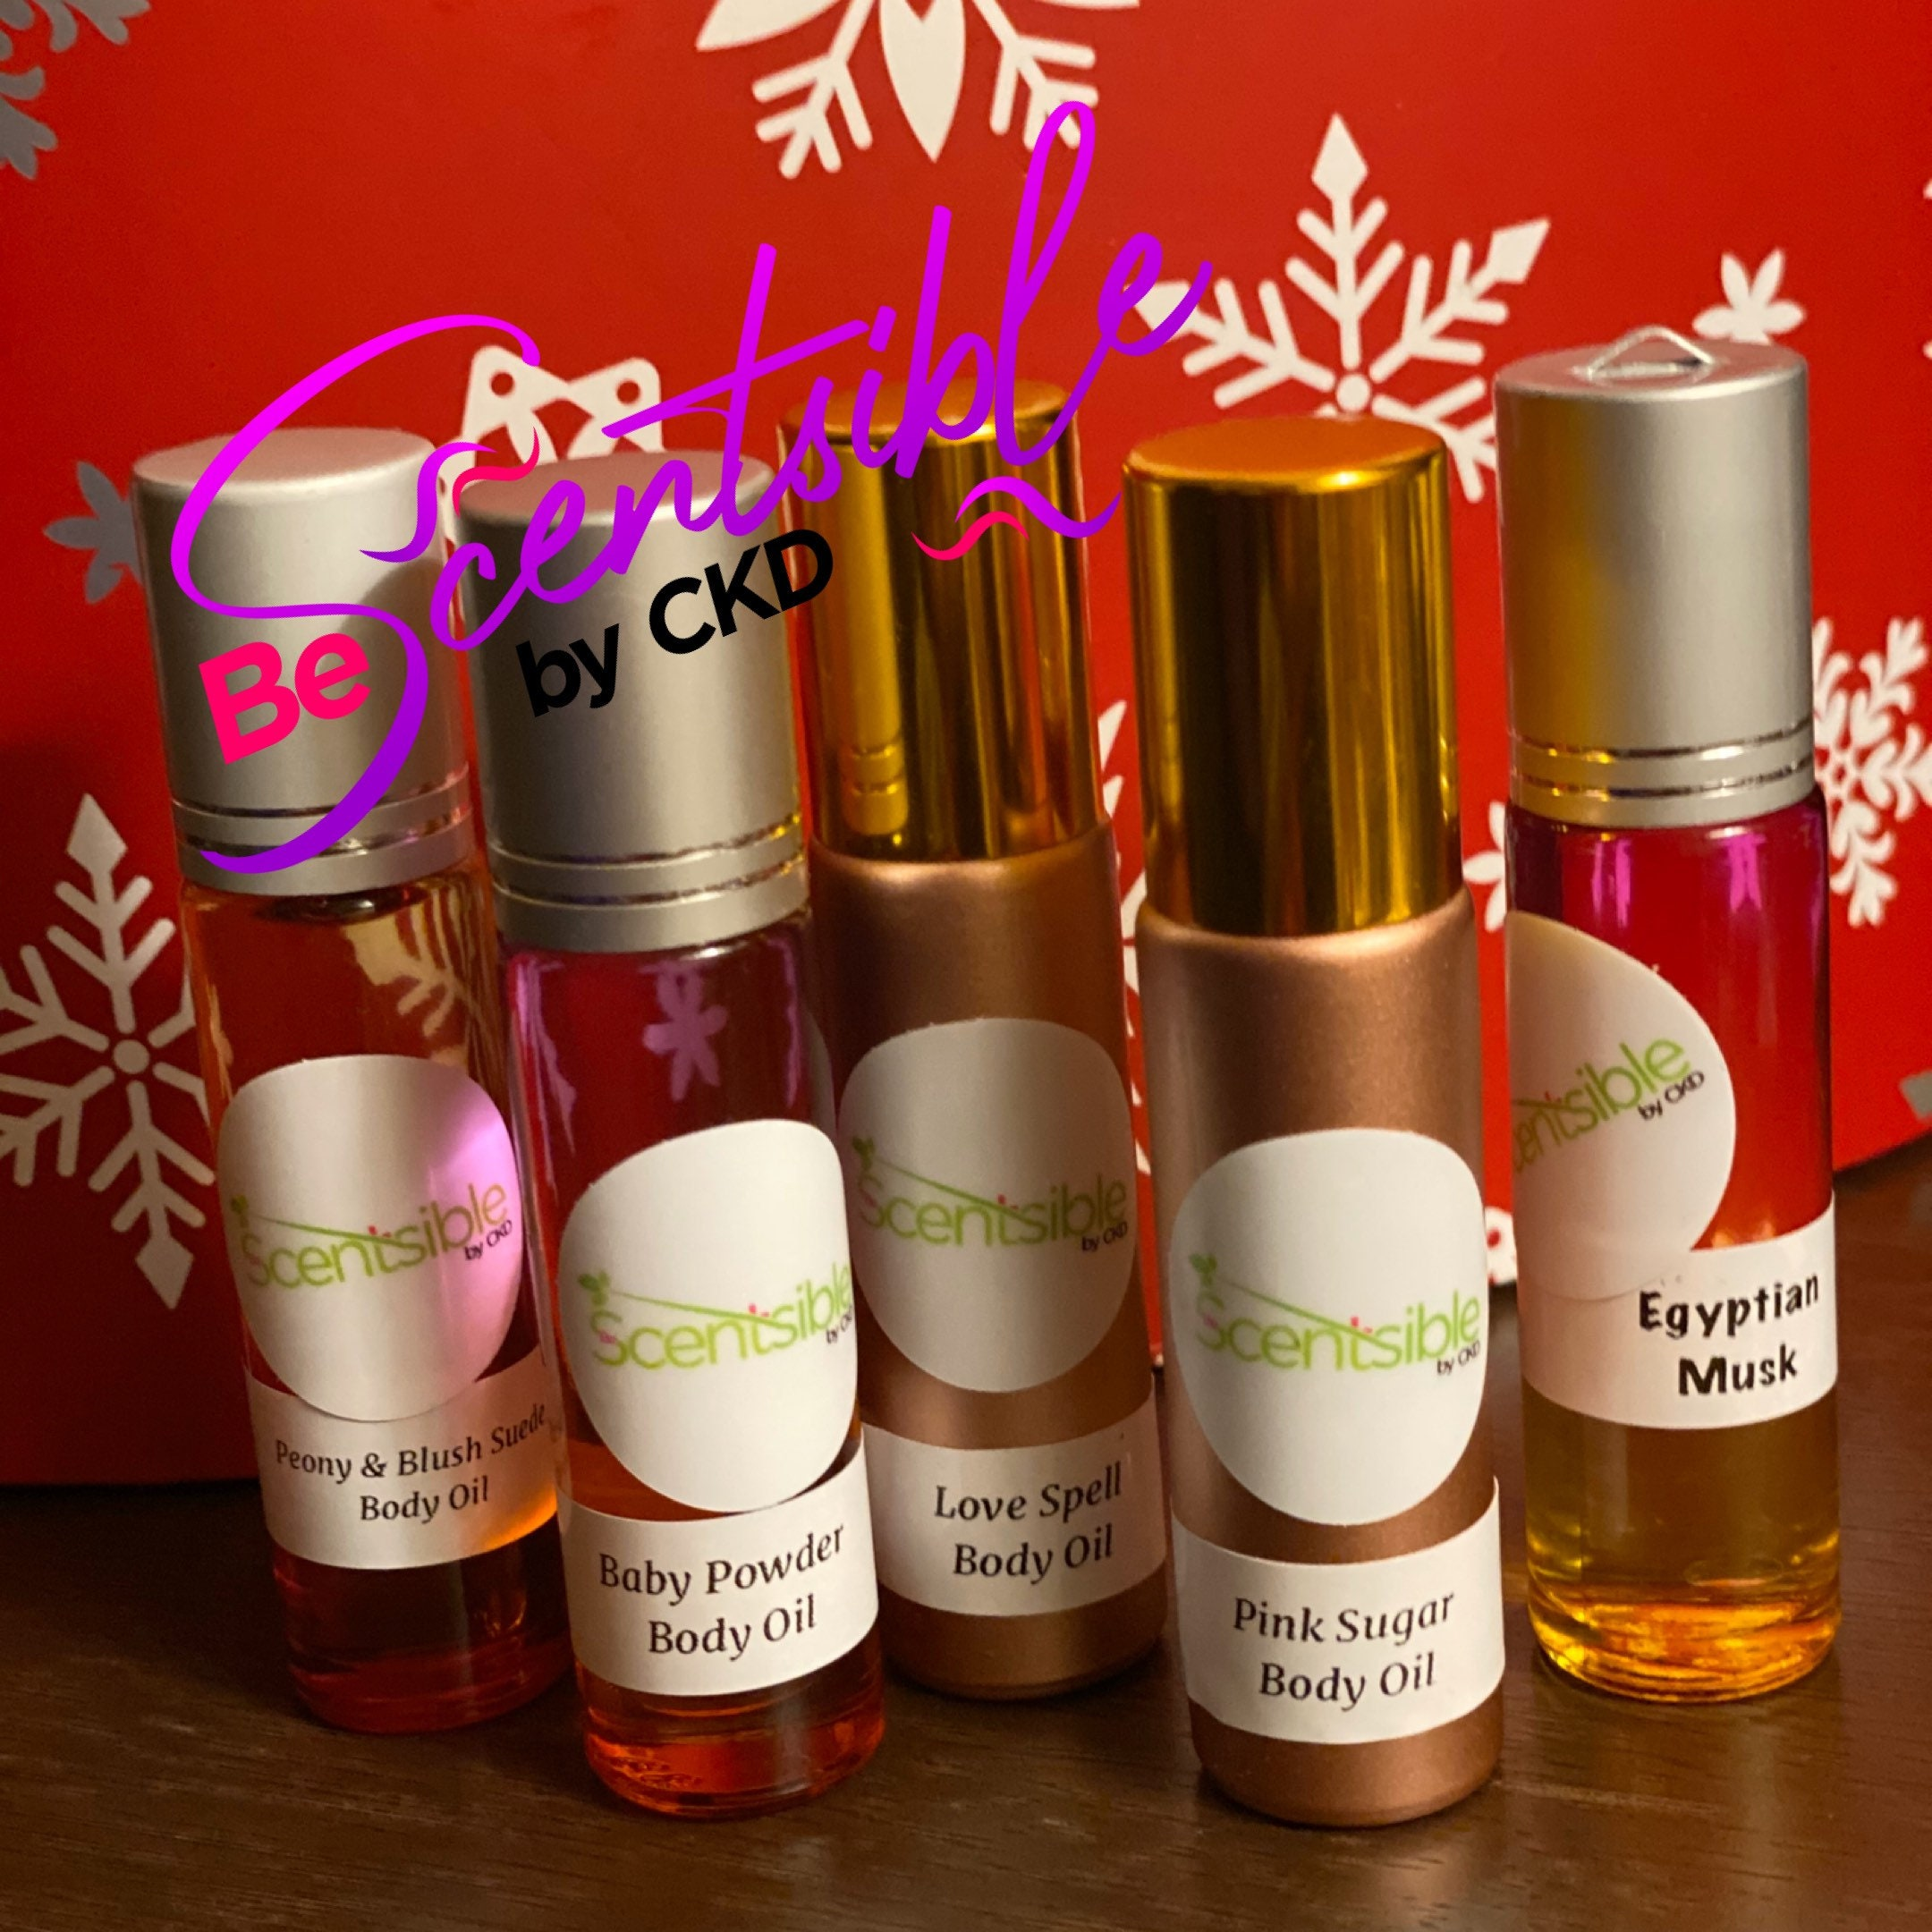 Be Scentsible By CKD Body Oils